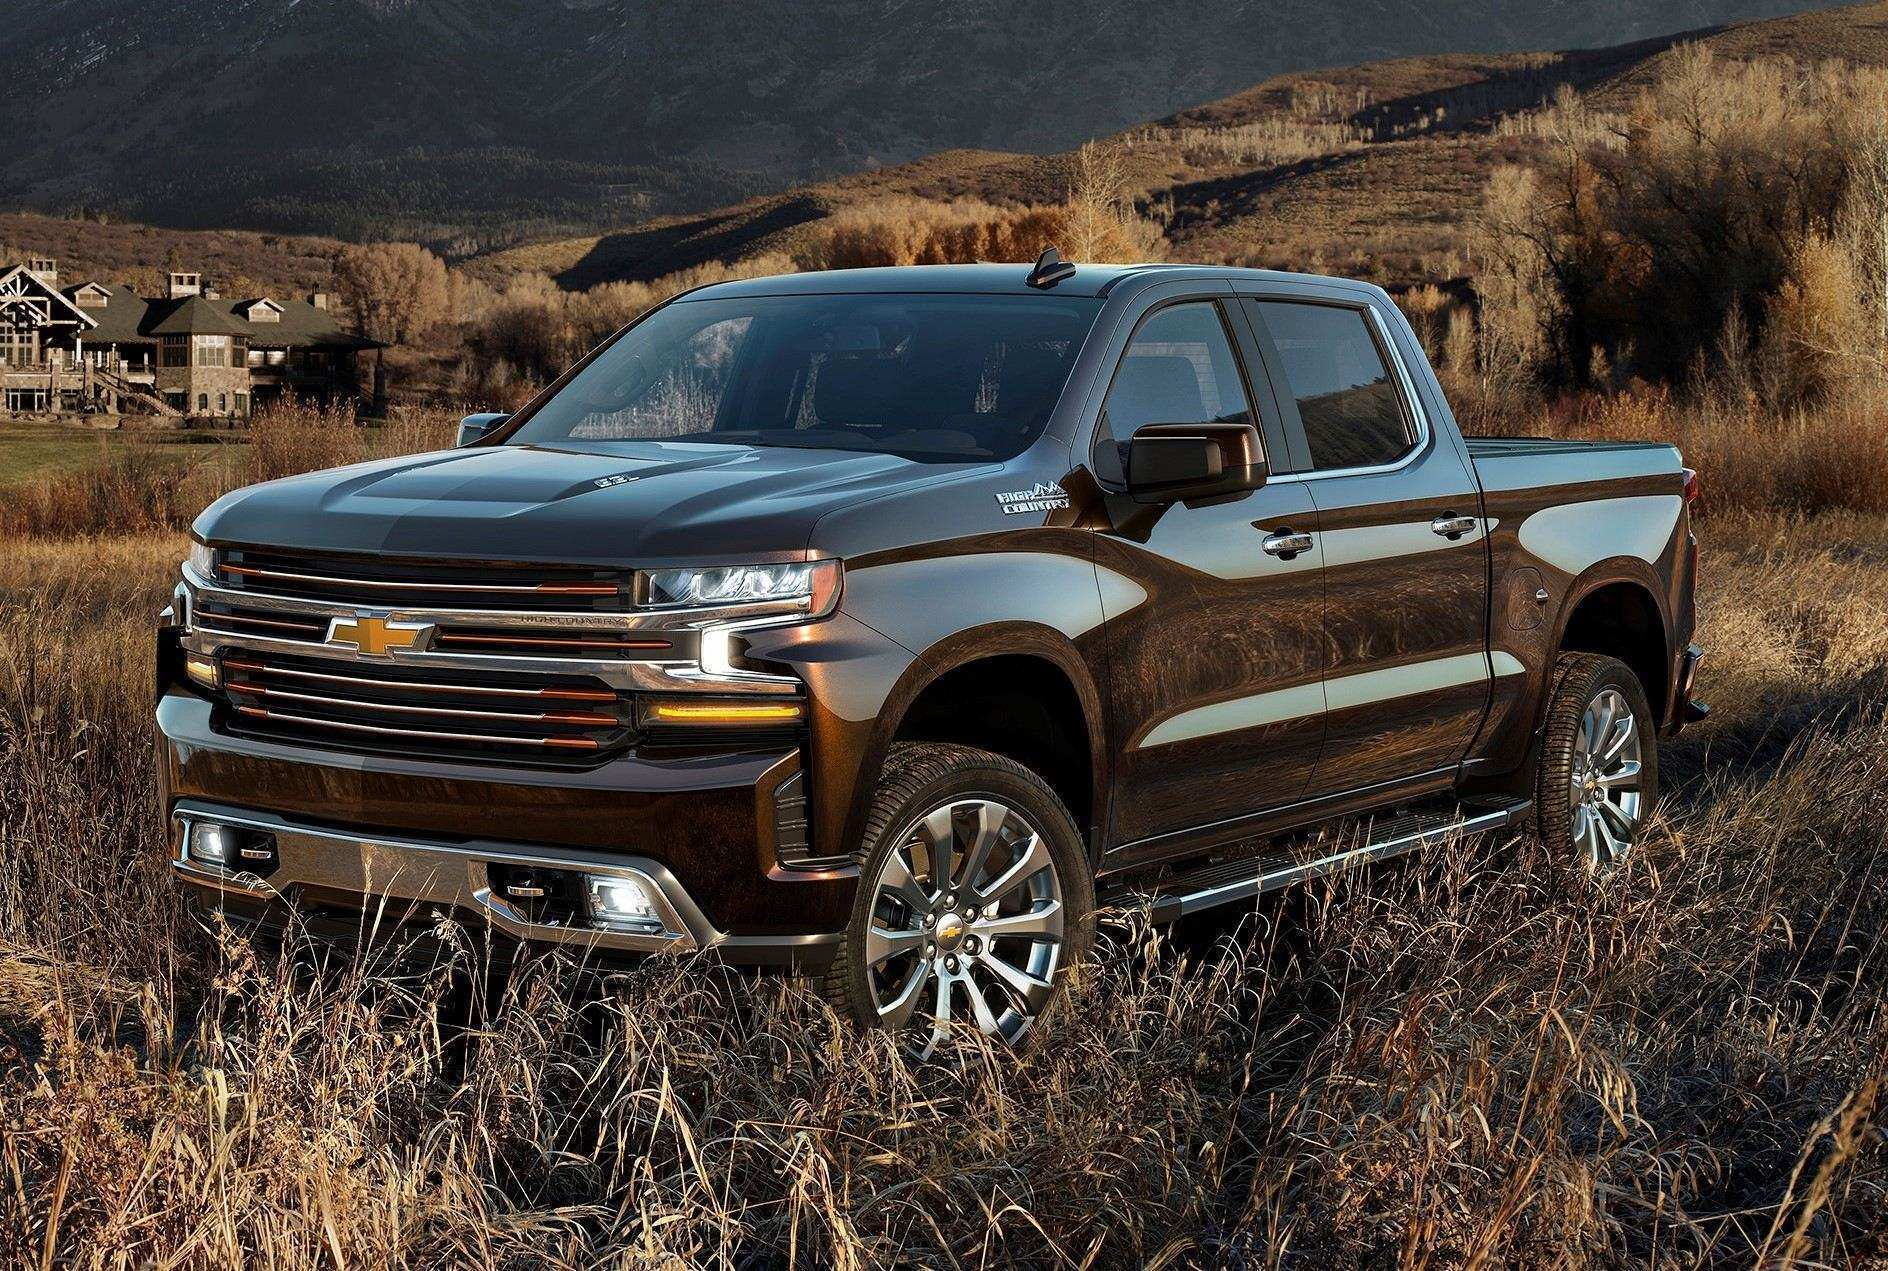 74 The 2019 Chevrolet Silverado Diesel Spy Shoot with 2019 Chevrolet Silverado Diesel